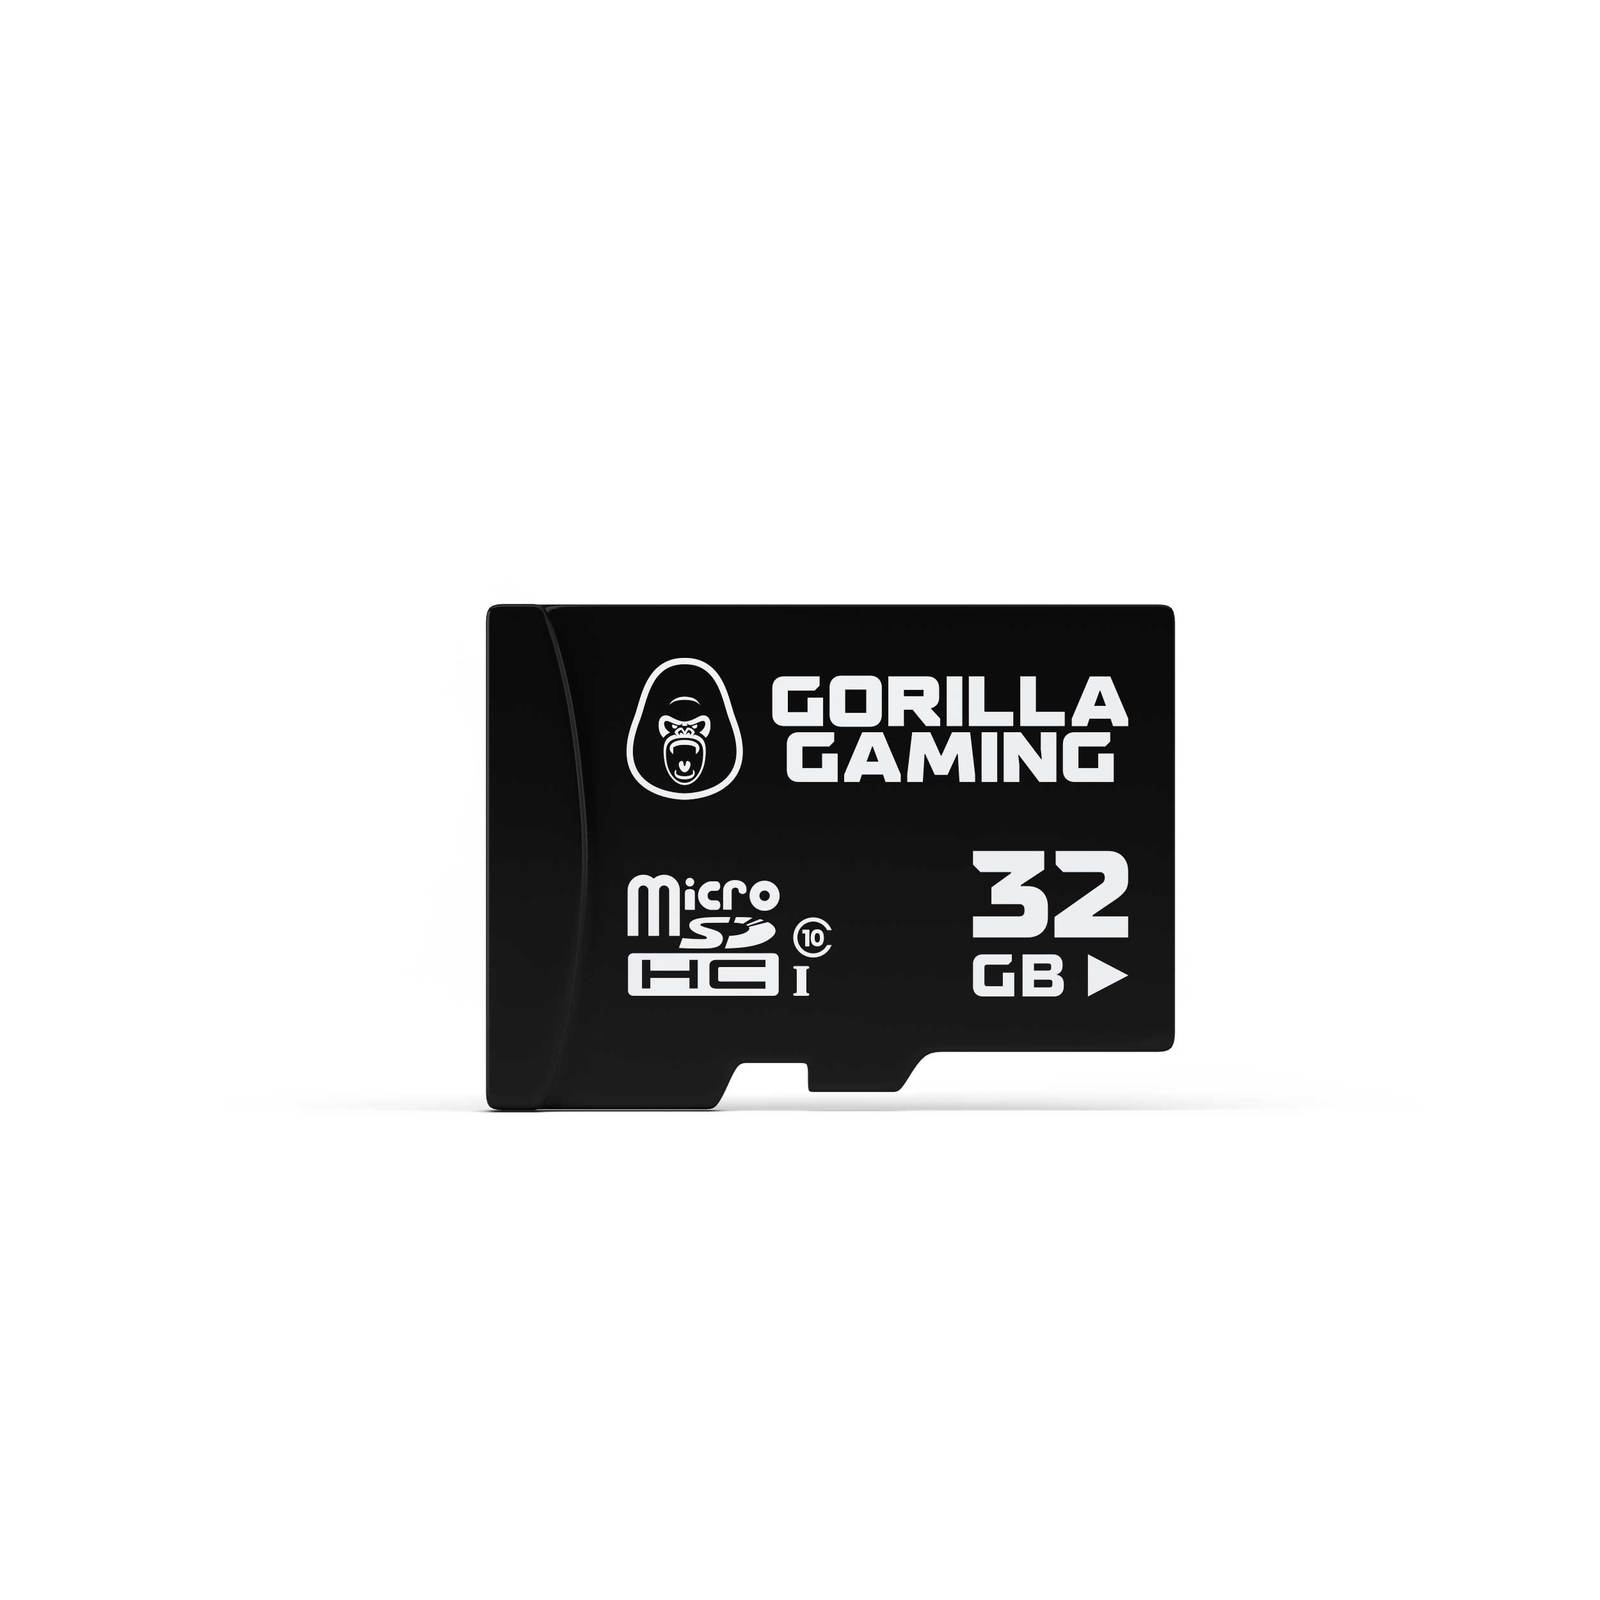 Gorilla Gaming Switch 32GB Memory Card for Switch image